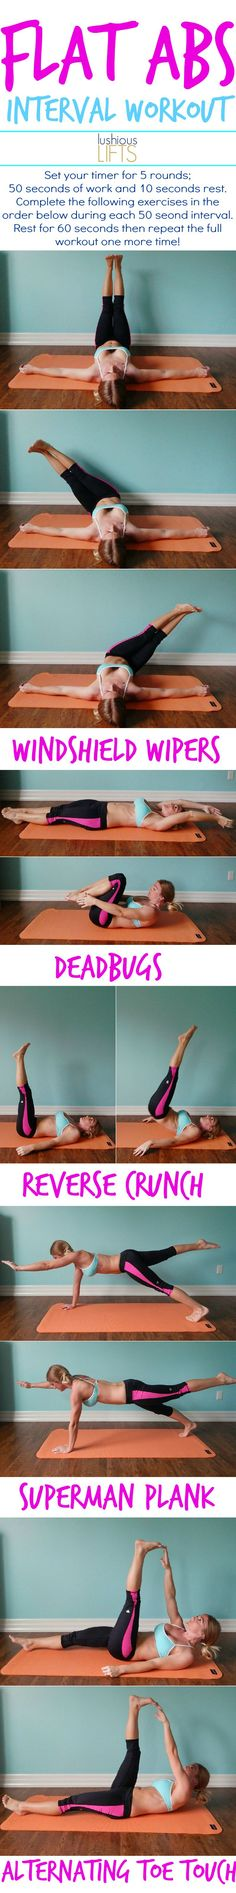 121 Best Tummy Tucks images | Tummy tucks, Body contouring